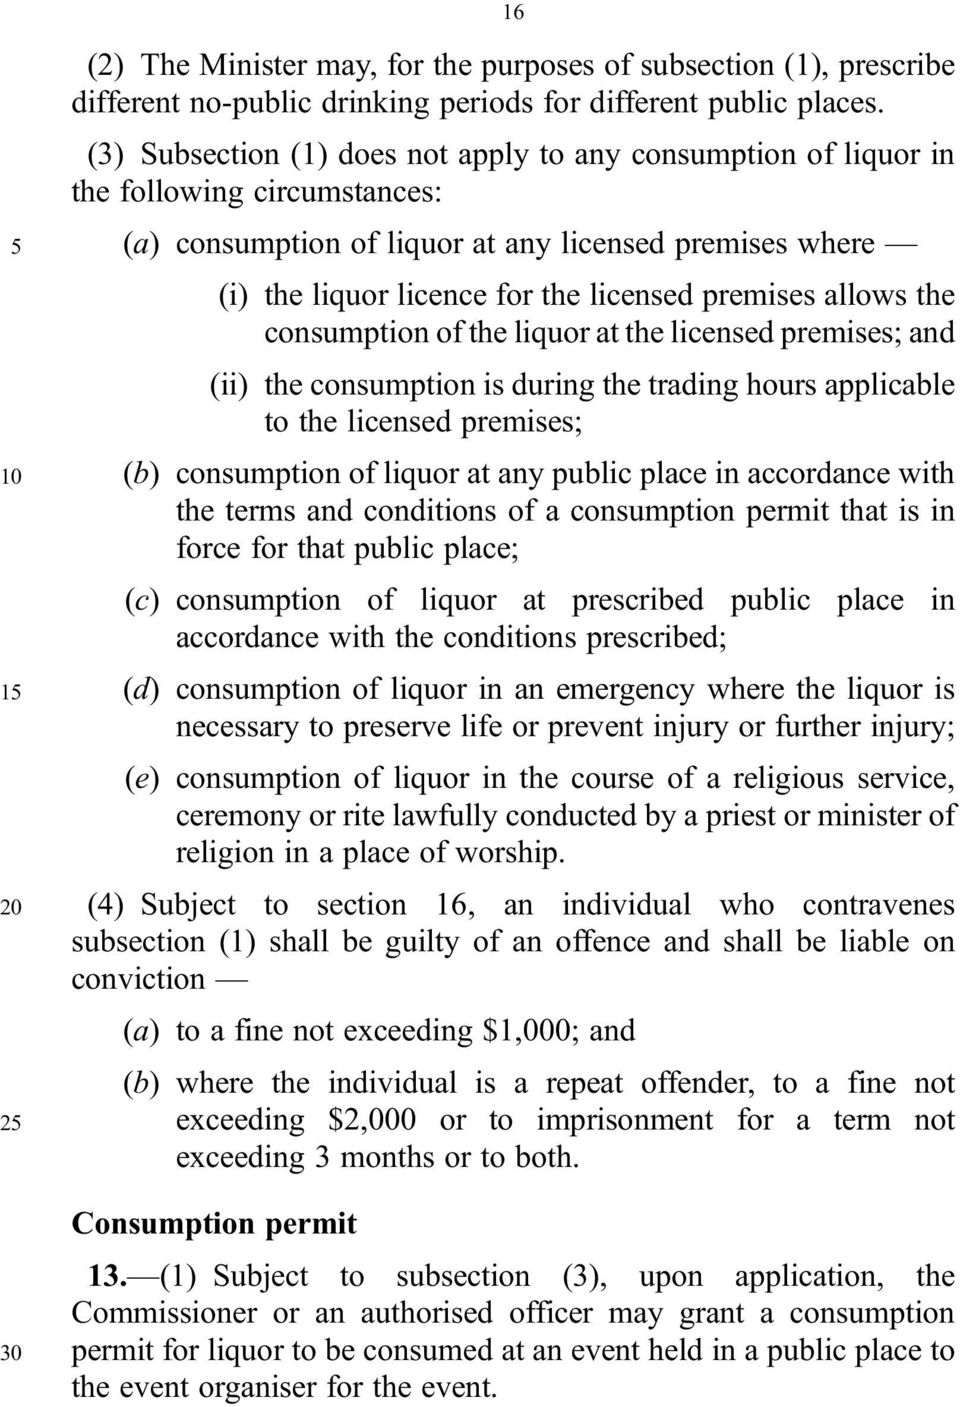 premises allows the consumption of the liquor at the licensed premises; and (ii) the consumption is during the trading hours applicable to the licensed premises; 10 (b) consumption of liquor at any